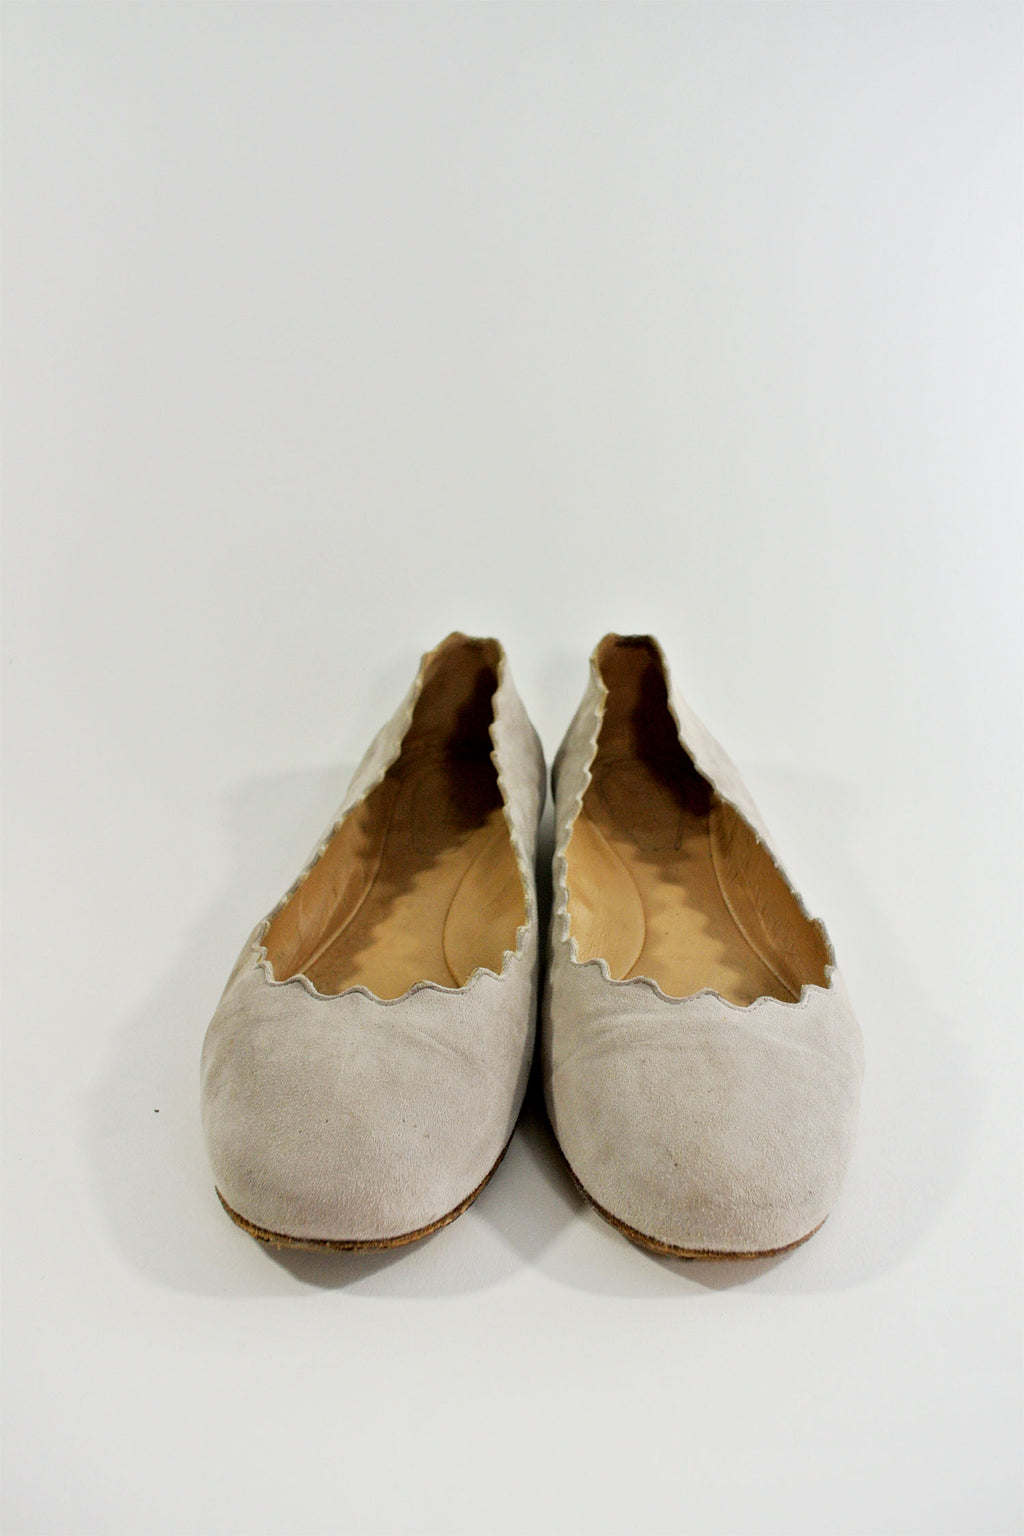 Chloe Lauren Scalloped Grey Flats sz 36.5